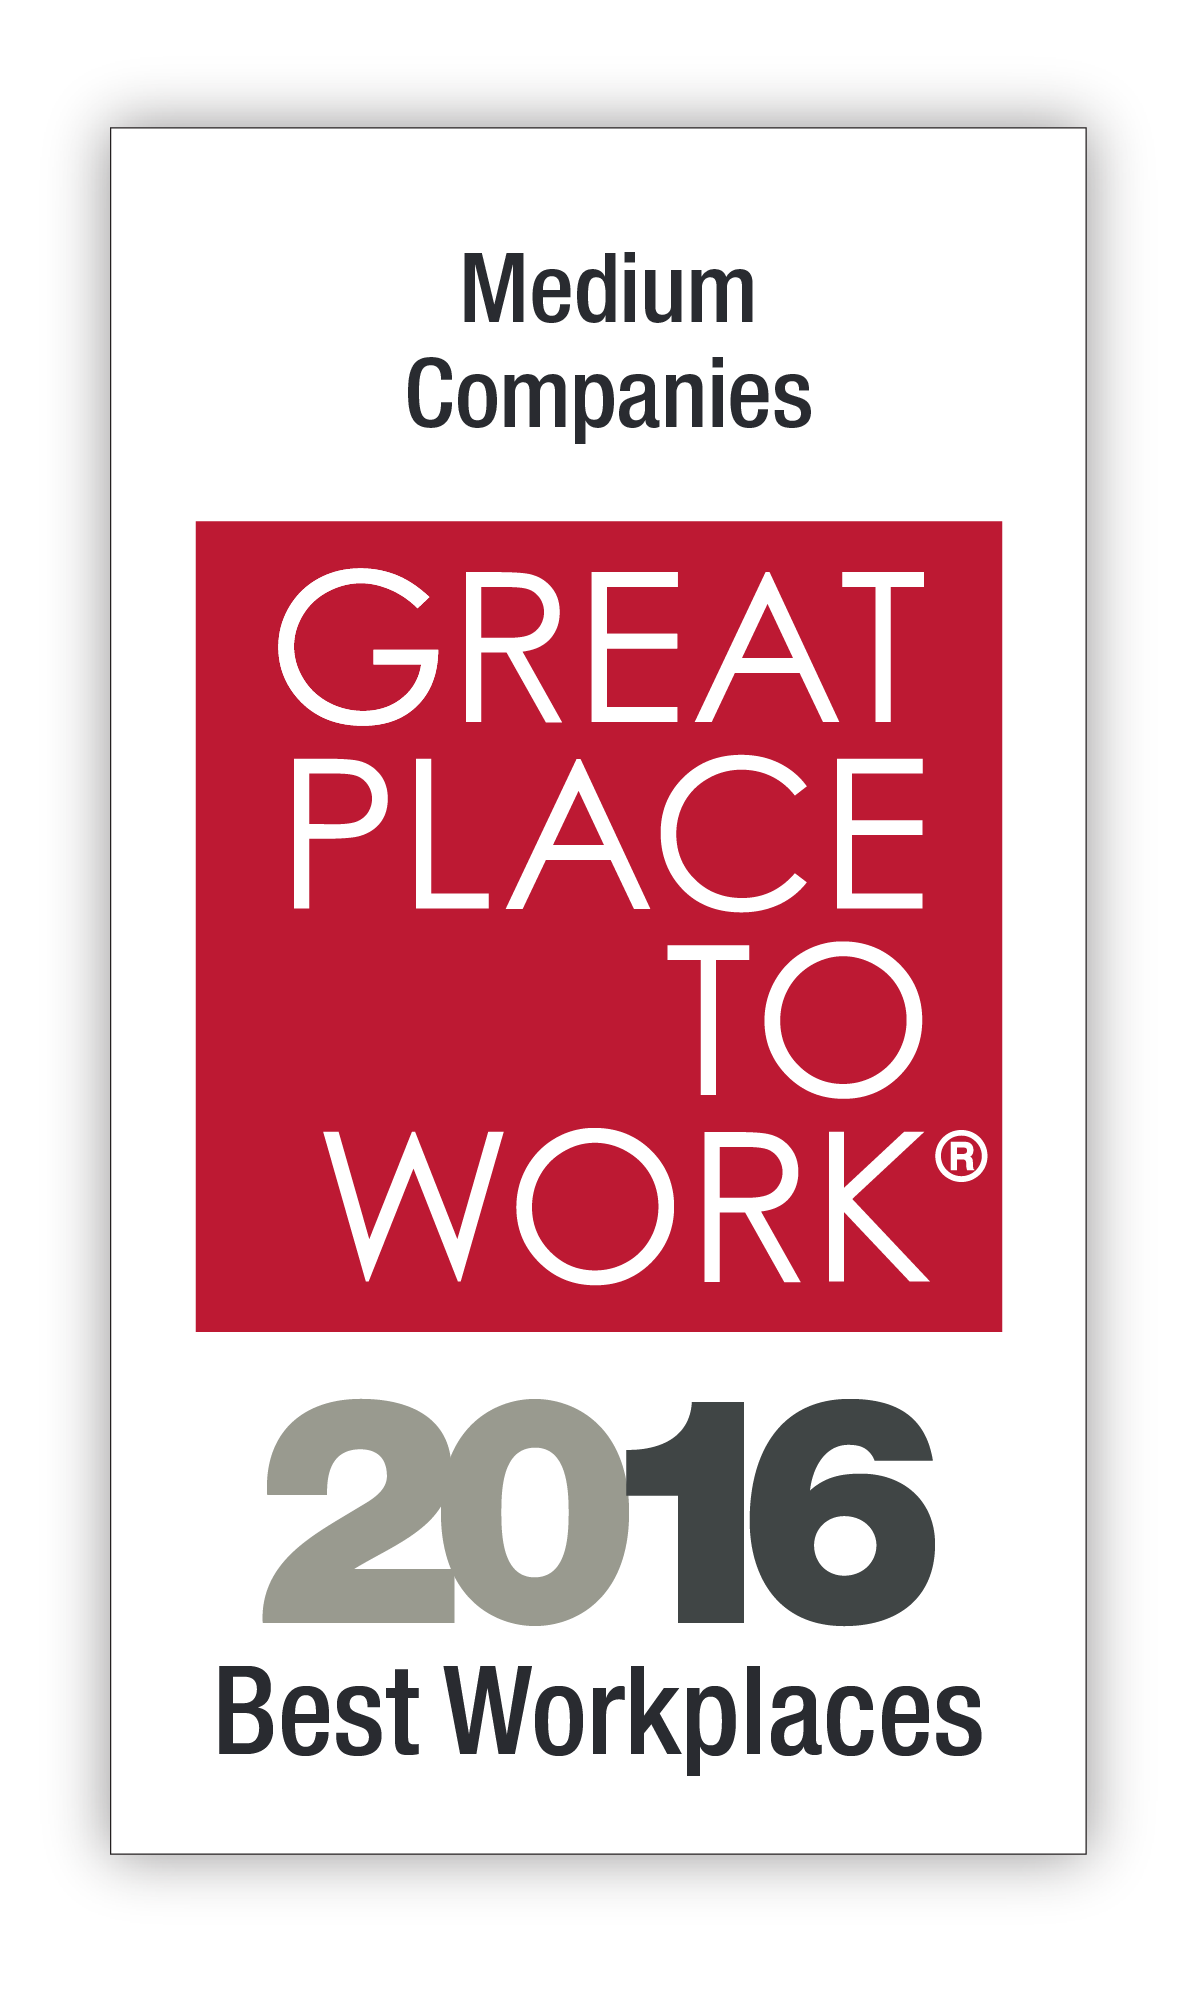 100 Best Medium Companies; Great Place to Work Logo